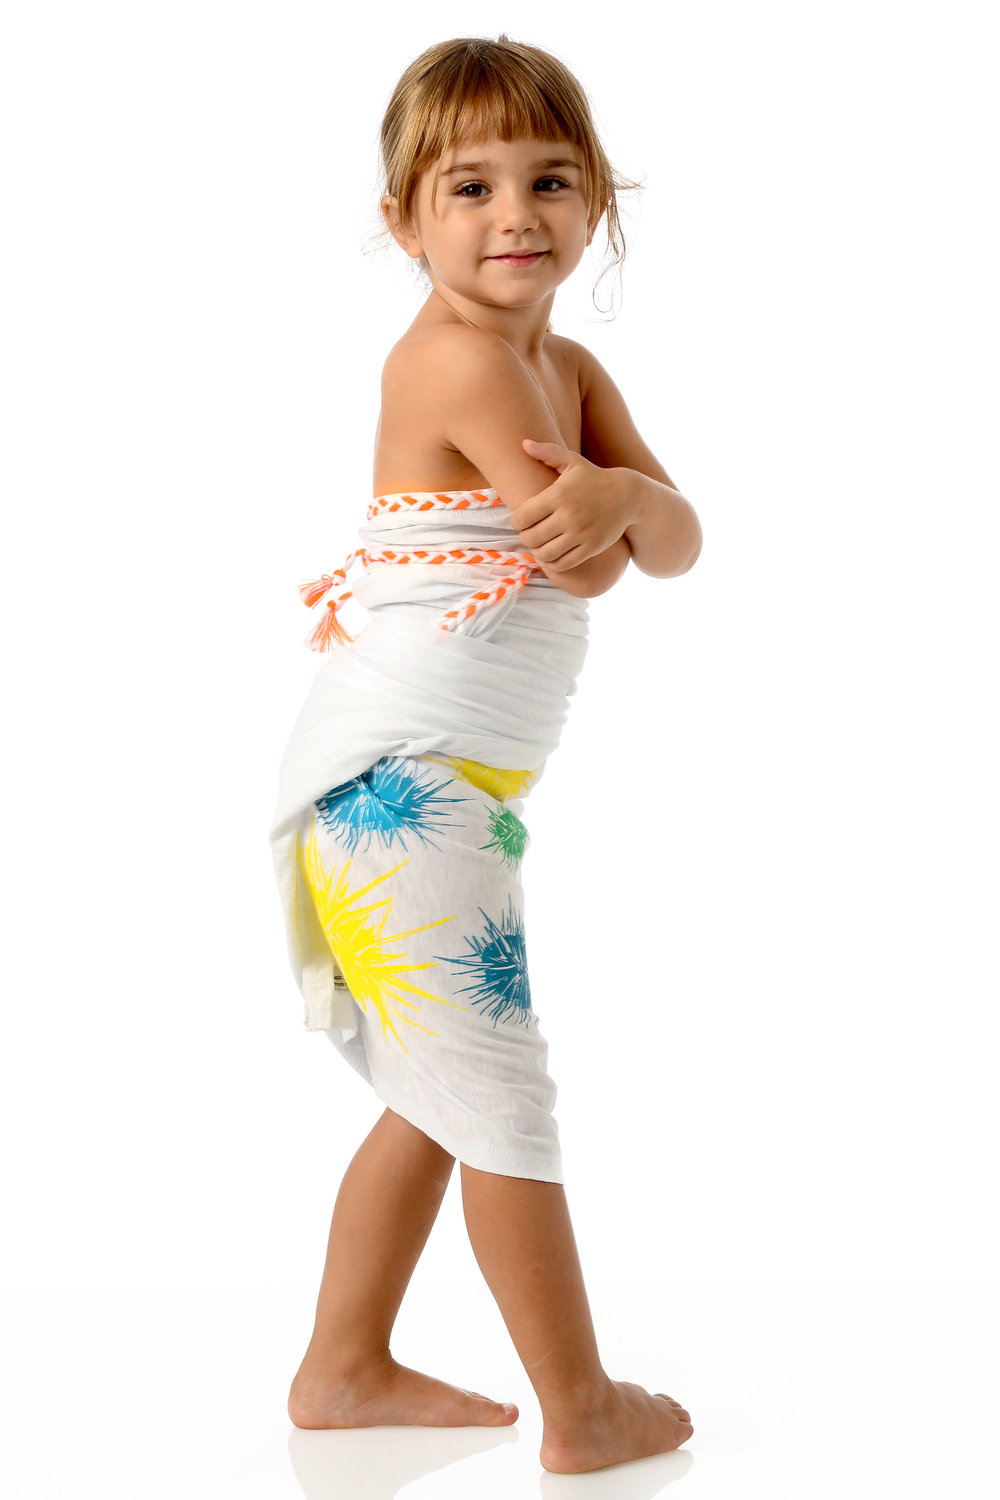 urchins-multi-color-design-on-white-cotton-kids-pareo-strapless-wraped-dress.jpg